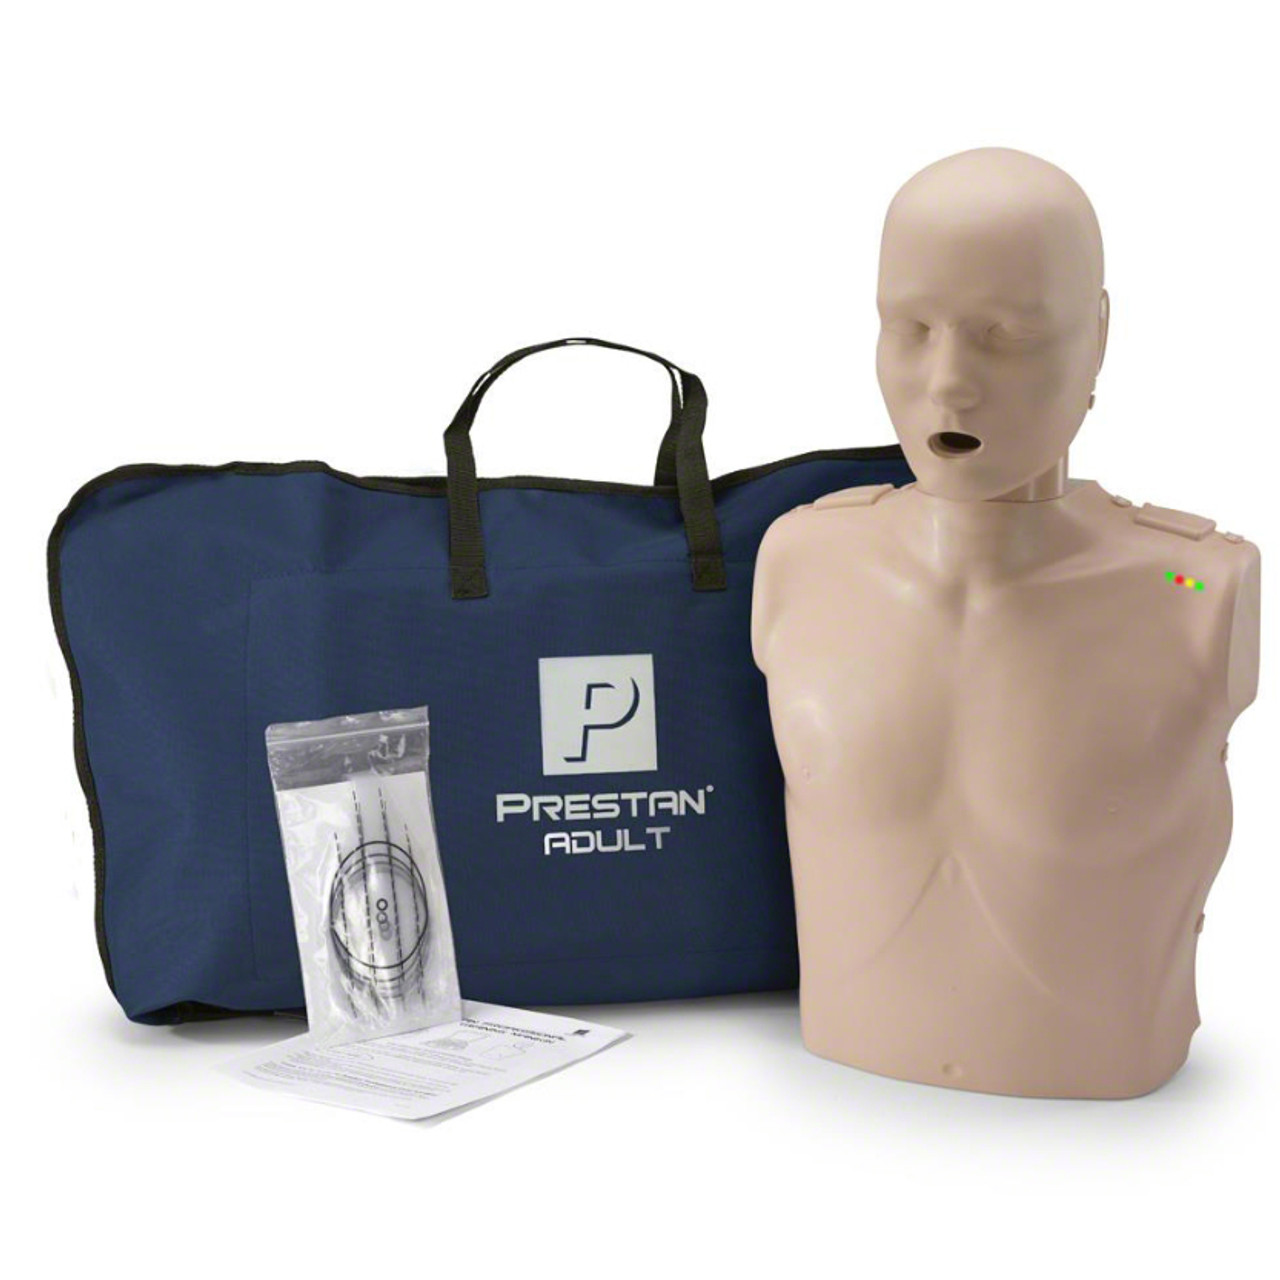 Prestan Manikin (Single), Adult Medium Skin Tone with CPR Monitor